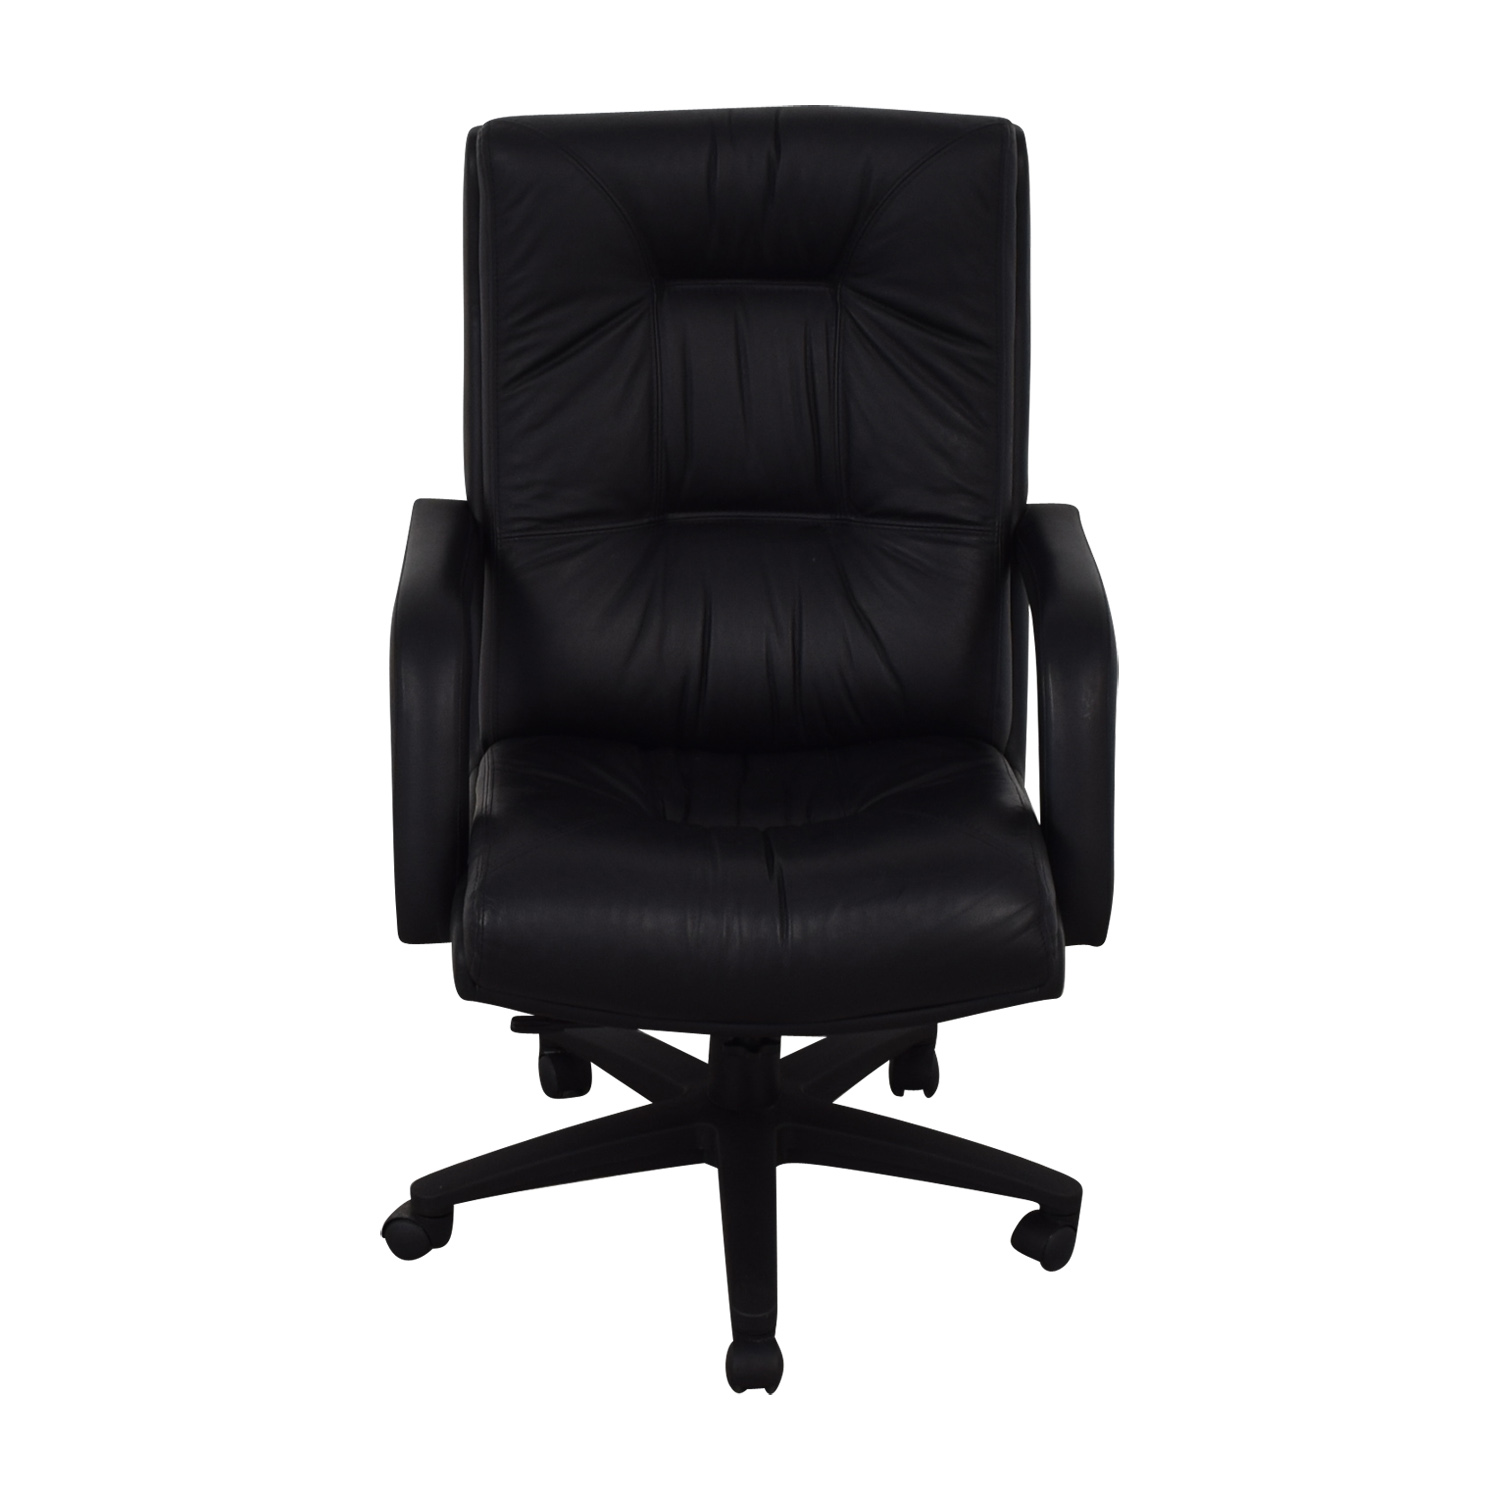 Office Chair with Armrests nj